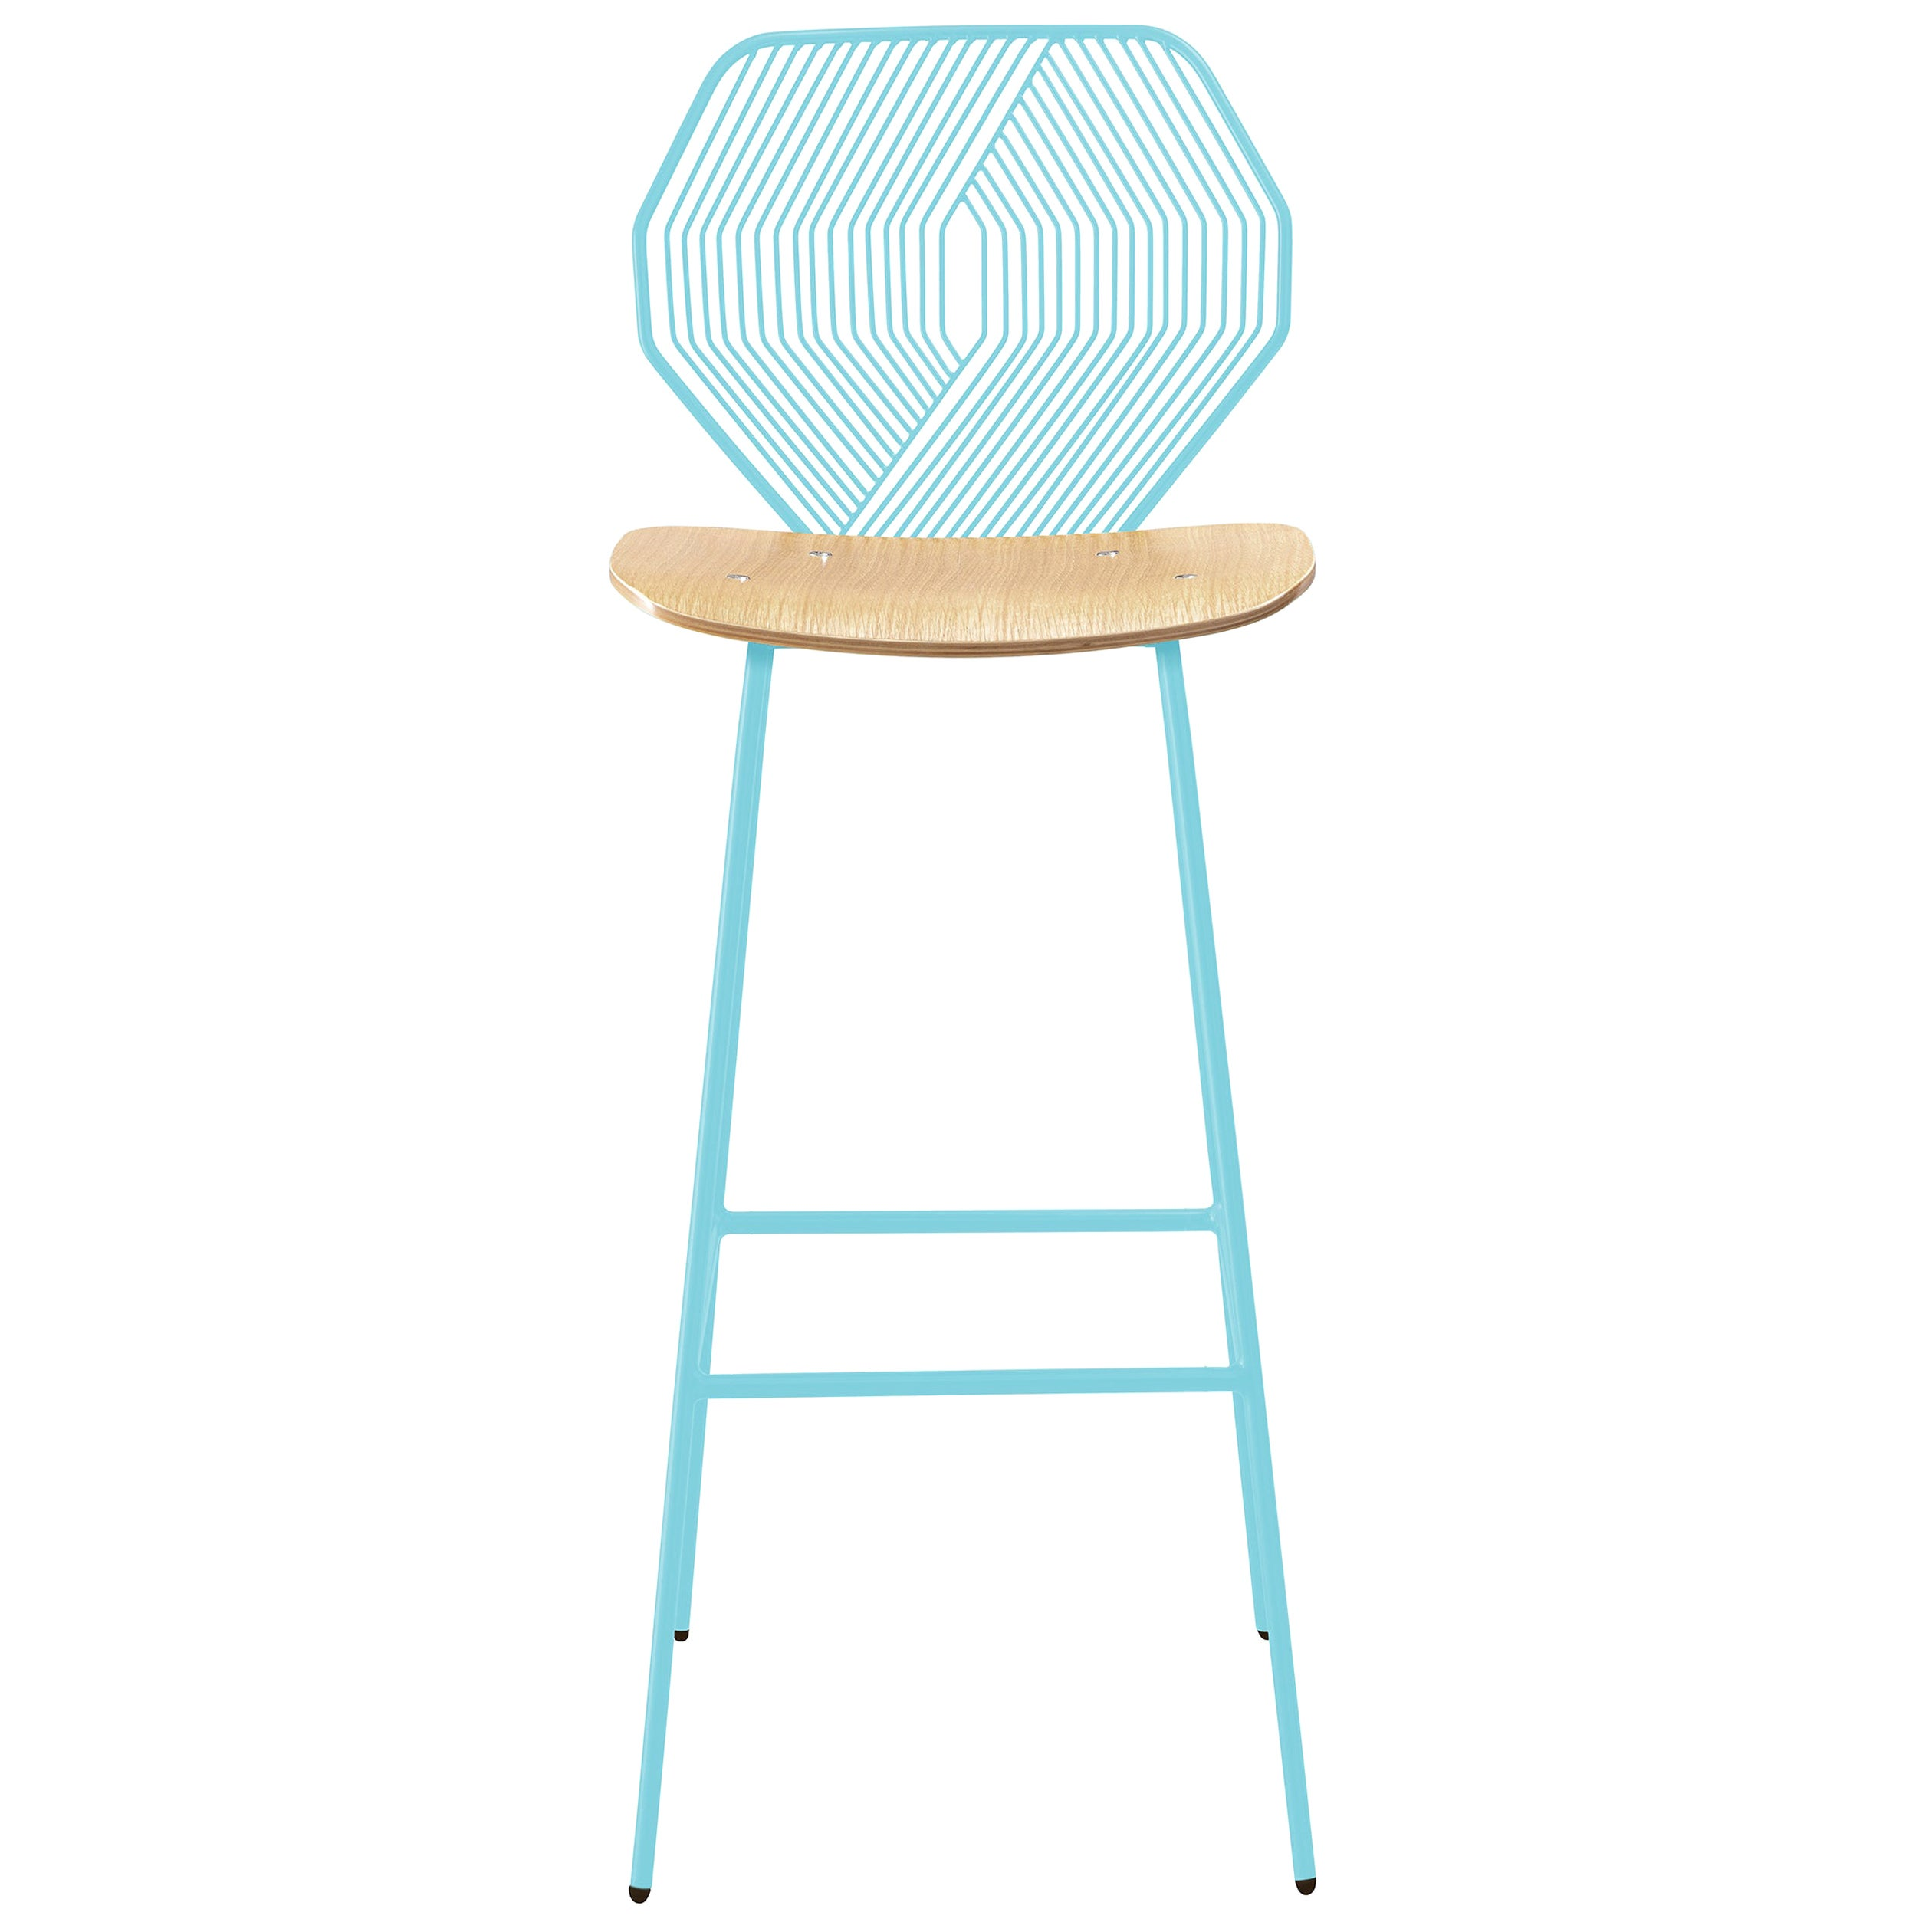 Modern Wire Bar Stool with a Wood Seat, Wood and Wire Bar Stool in Aqua